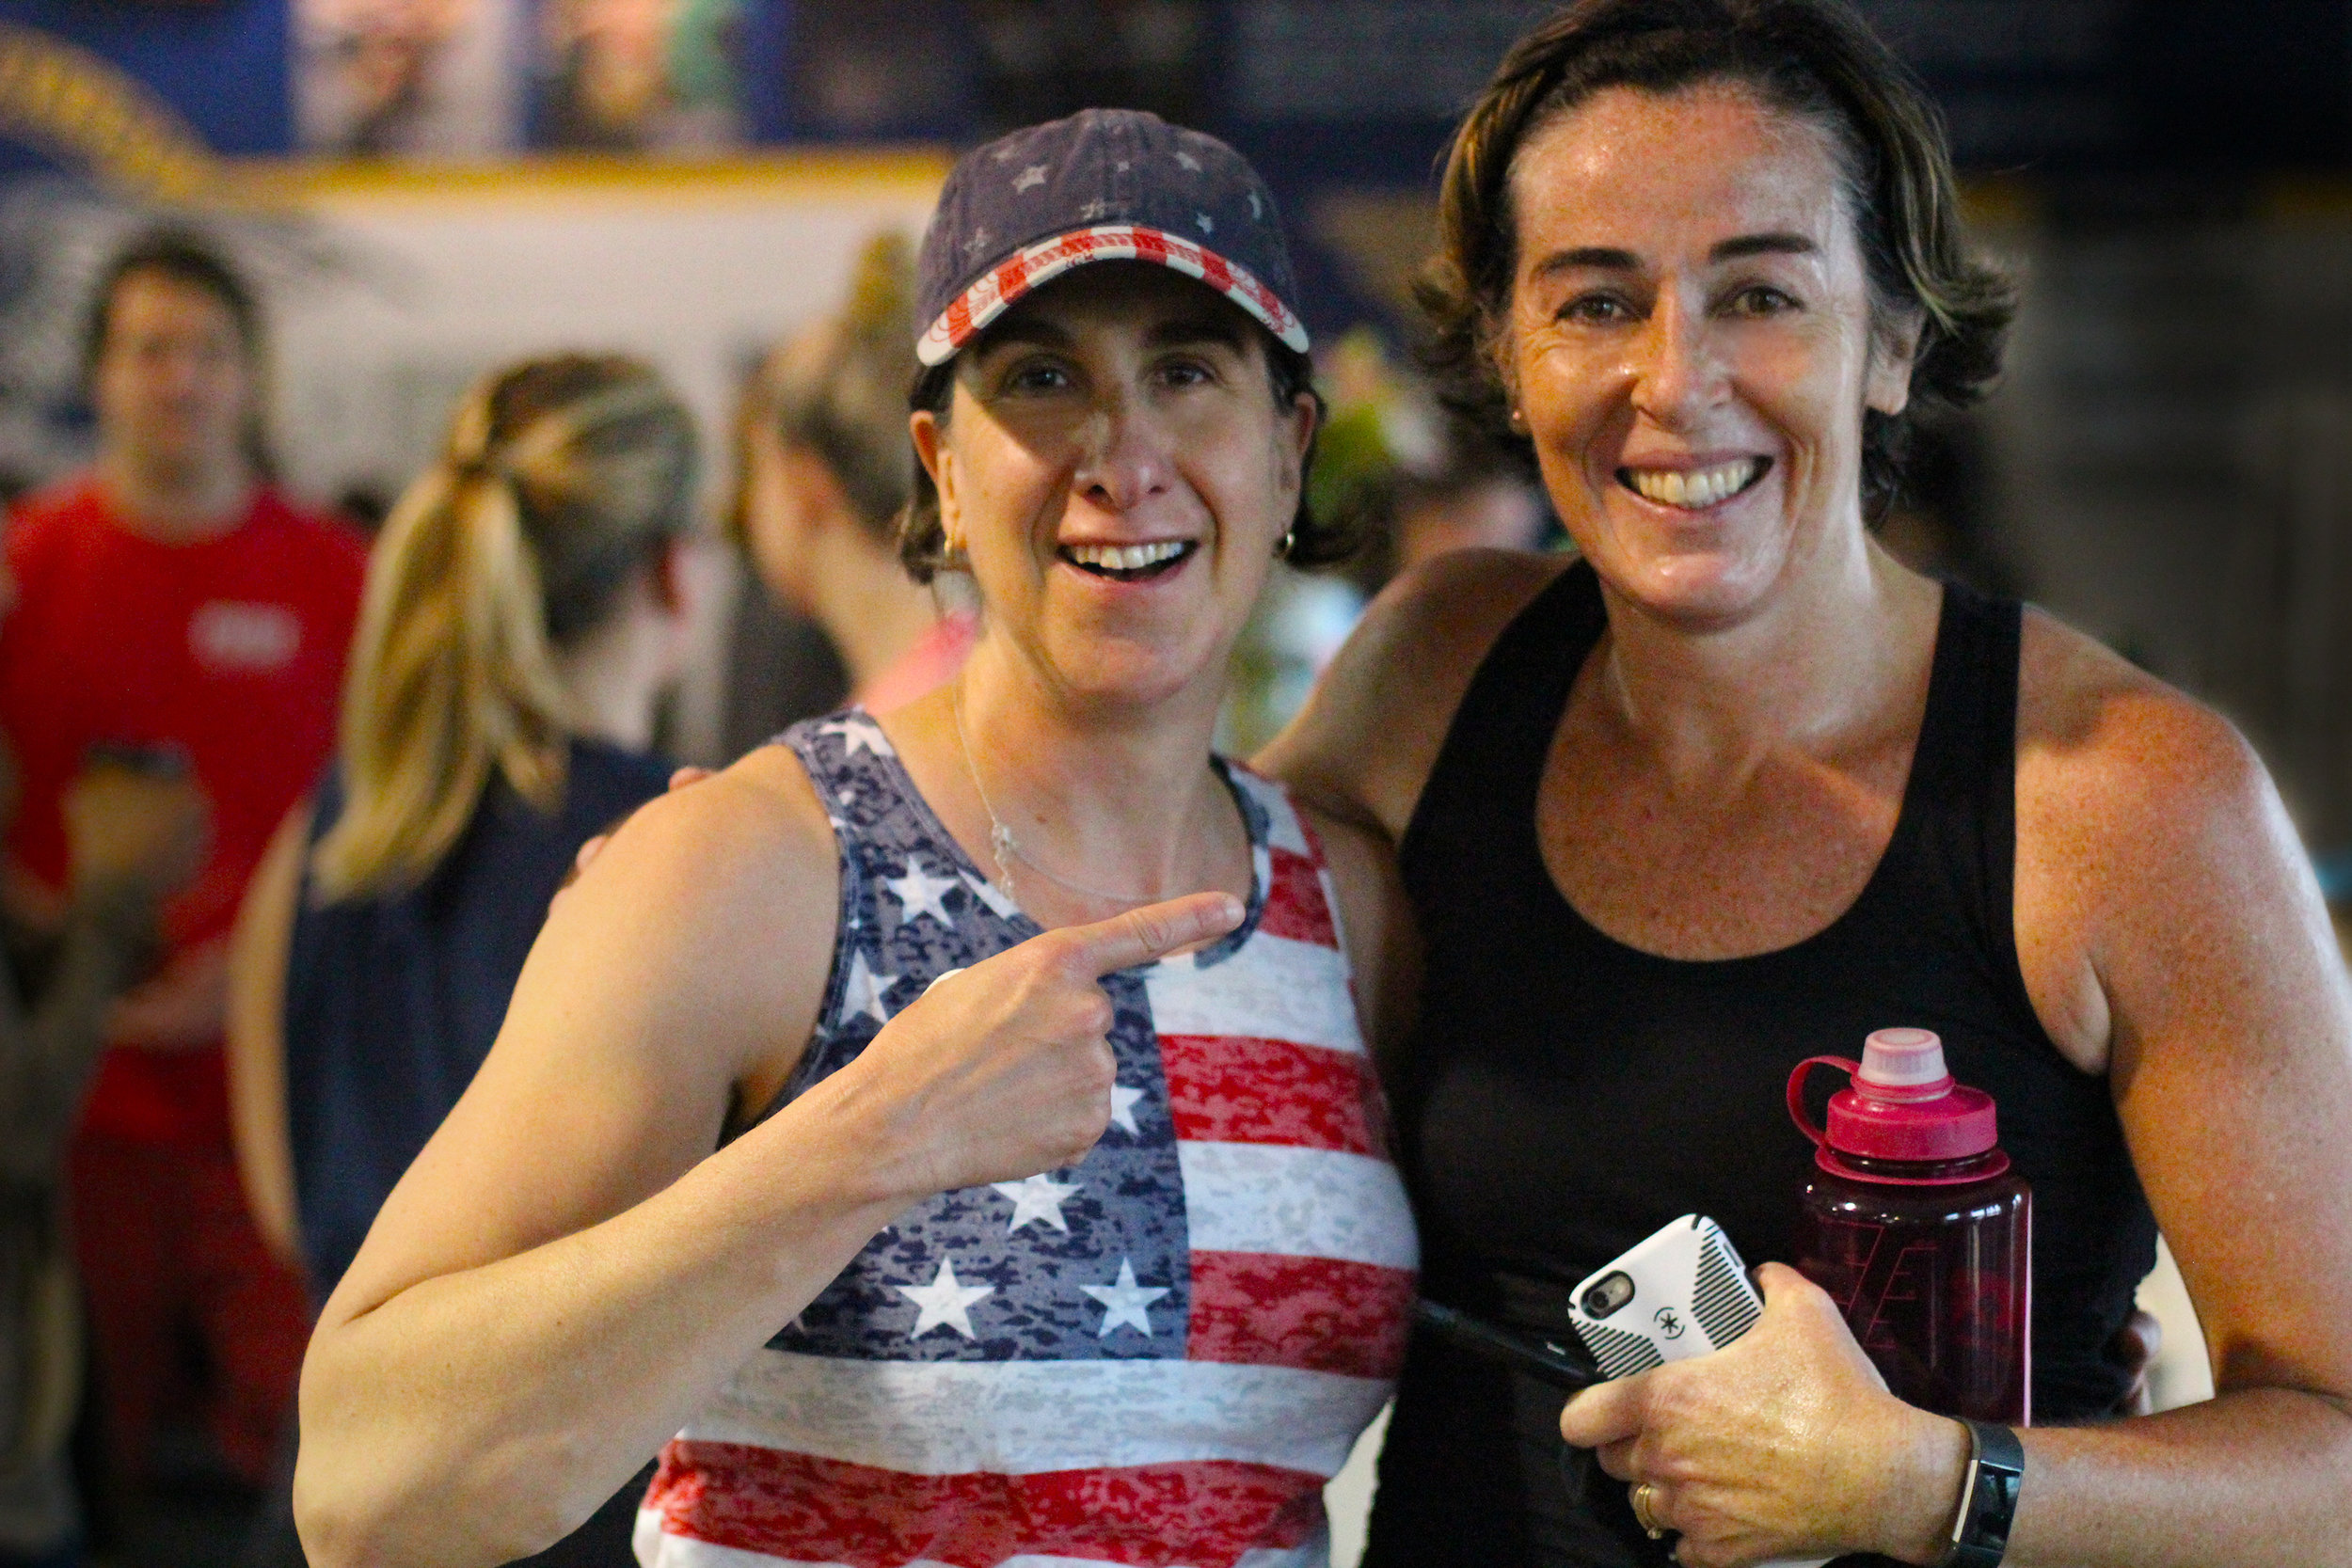 """What it's all about right here! Supporting each other to our personal and collective best.    Here's PVCF athletes, Sandy Diamond and  Megan Finn Grygorcewicz all smiles after finishing """"Murph""""! And it was Megan's first time through it! Great job, team!"""